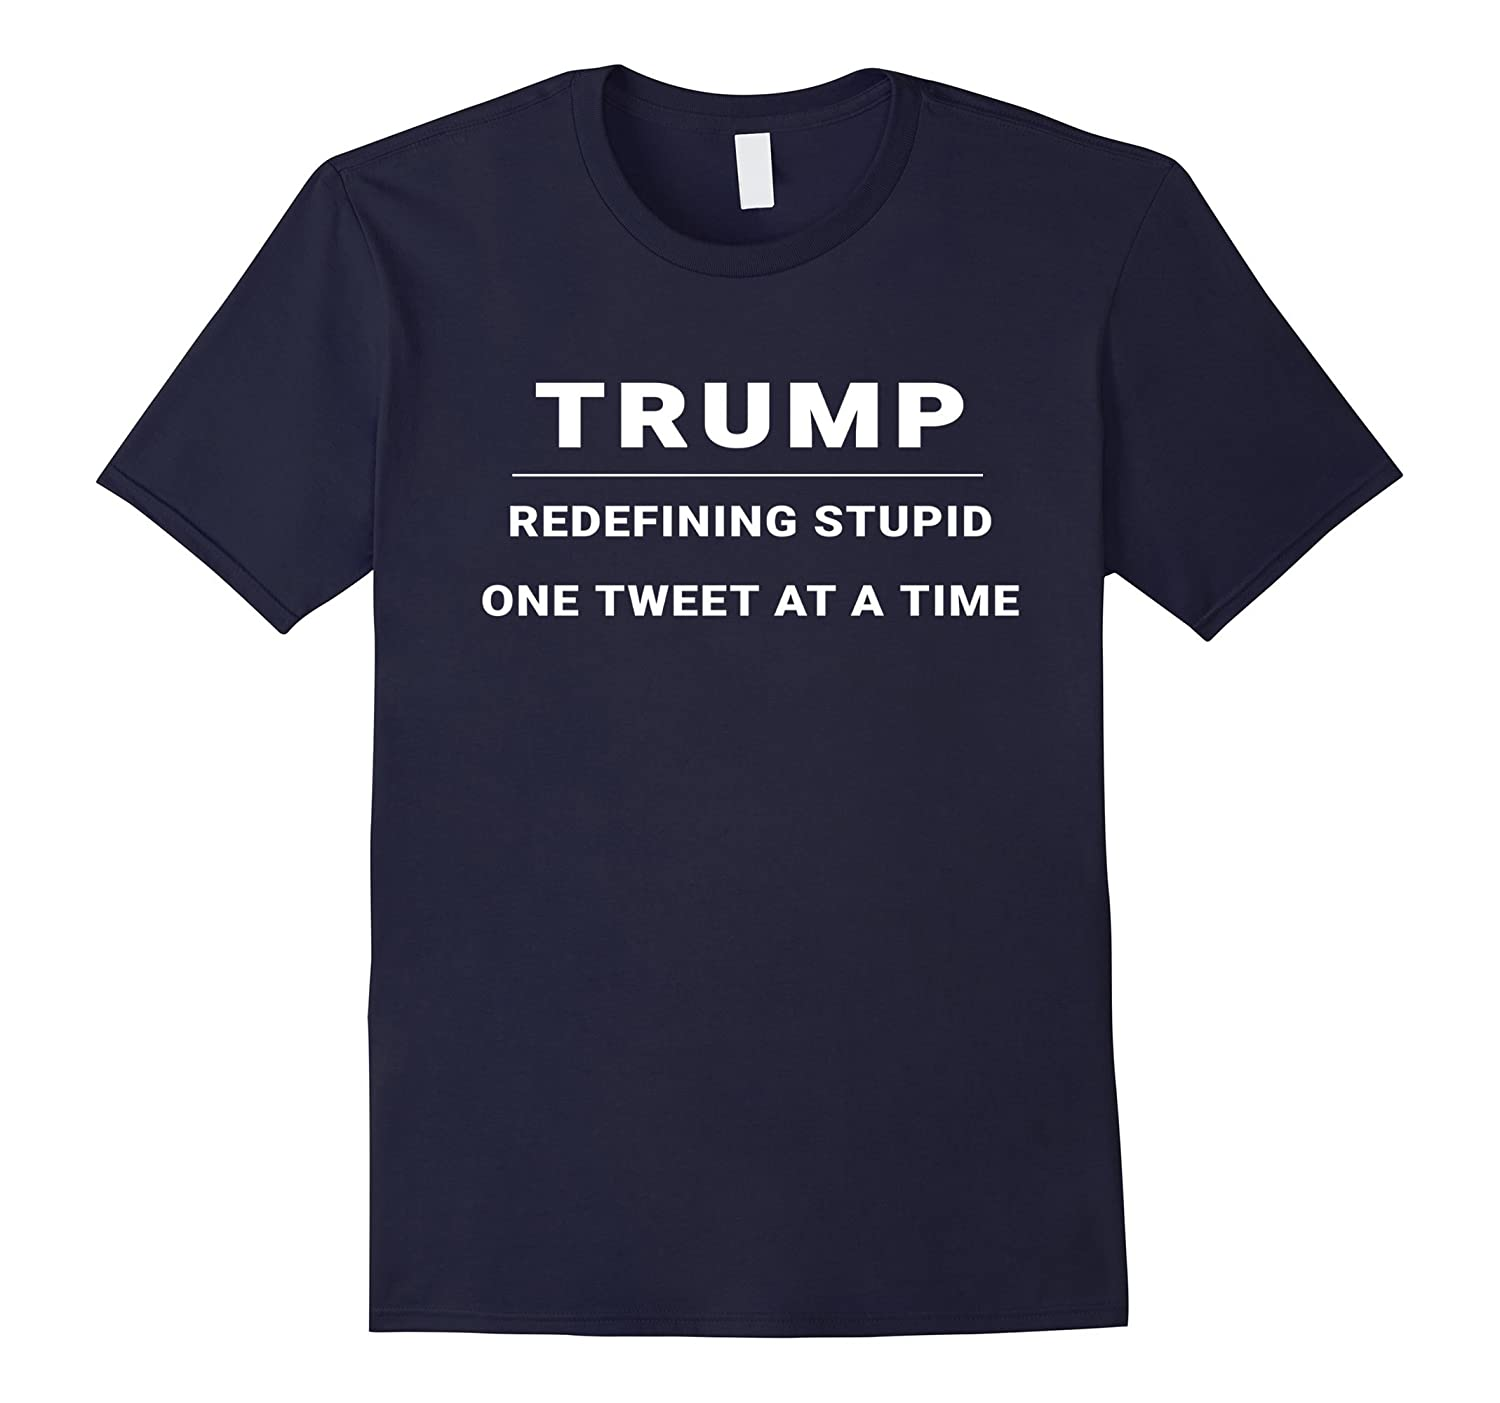 Trump - Redefining Stupid One Tweet At a Time T-shirt-Vaci